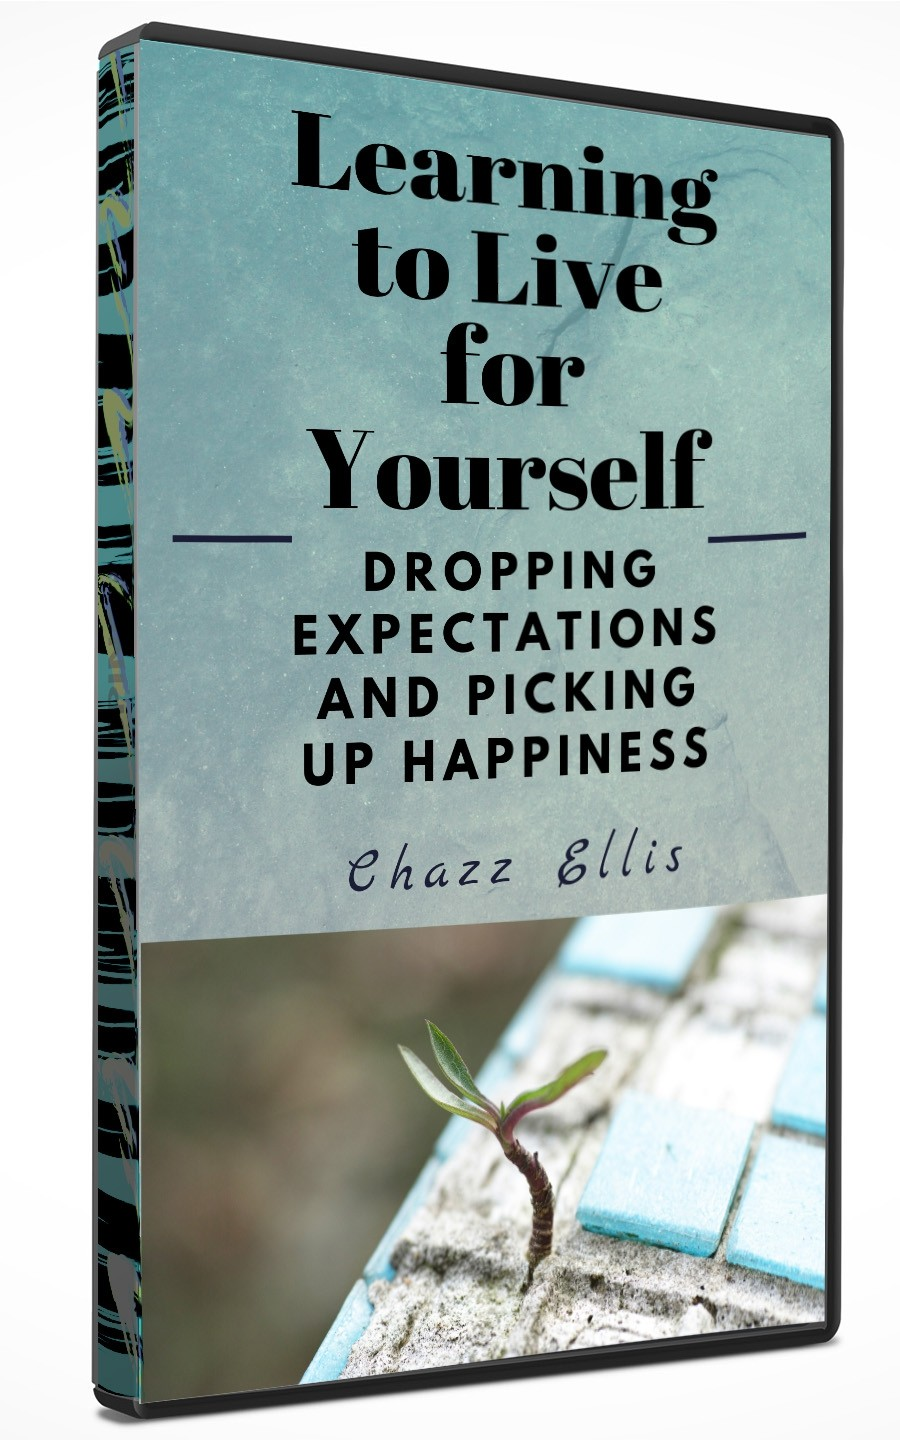 Learning to Live for Yourself (Dropping Expectations and Picking up Happiness)